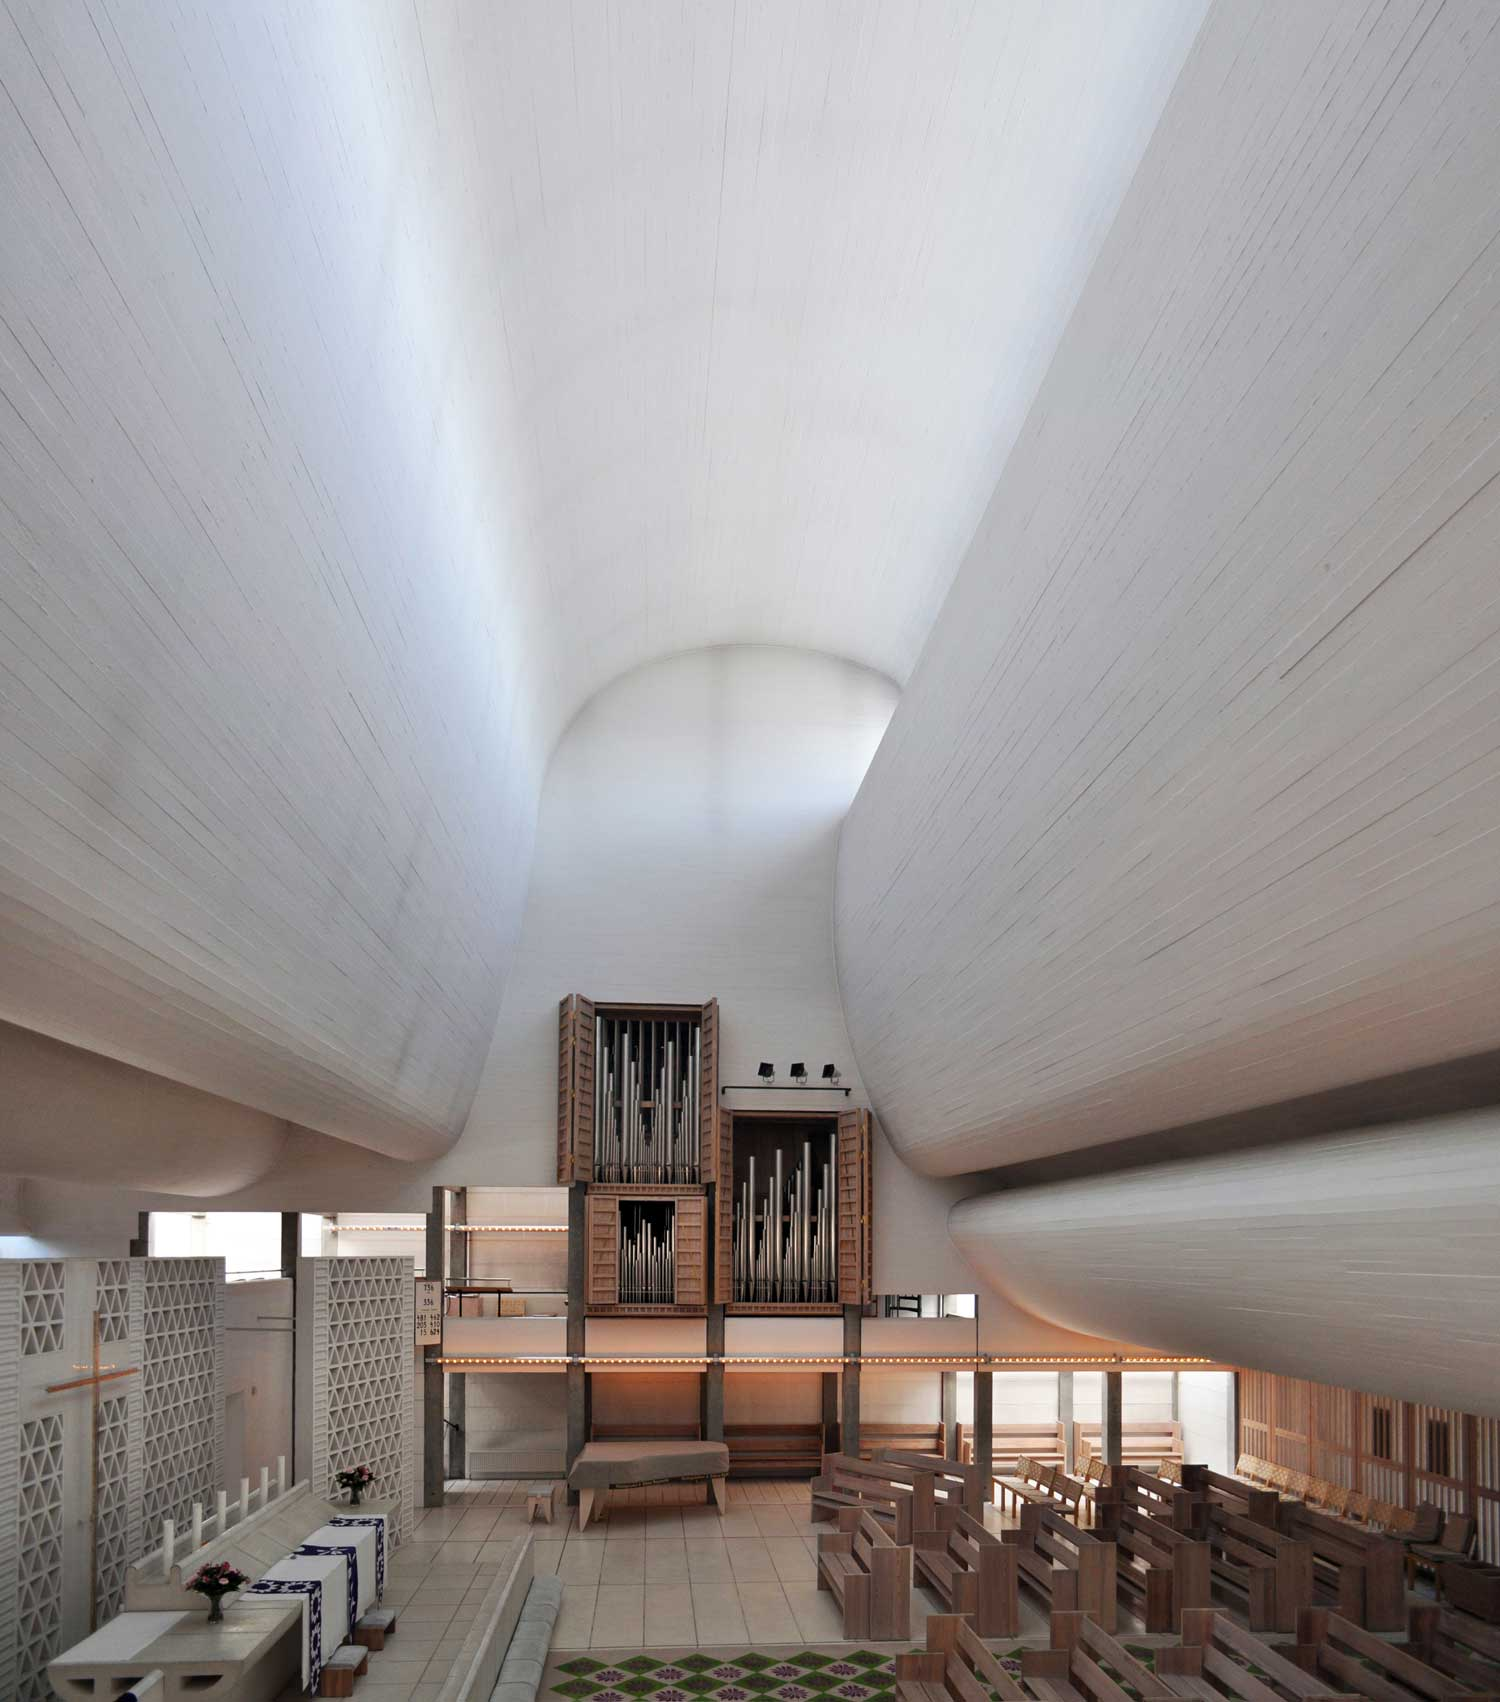 Bagsard Church by Jorn Utzon | Yellowtrace